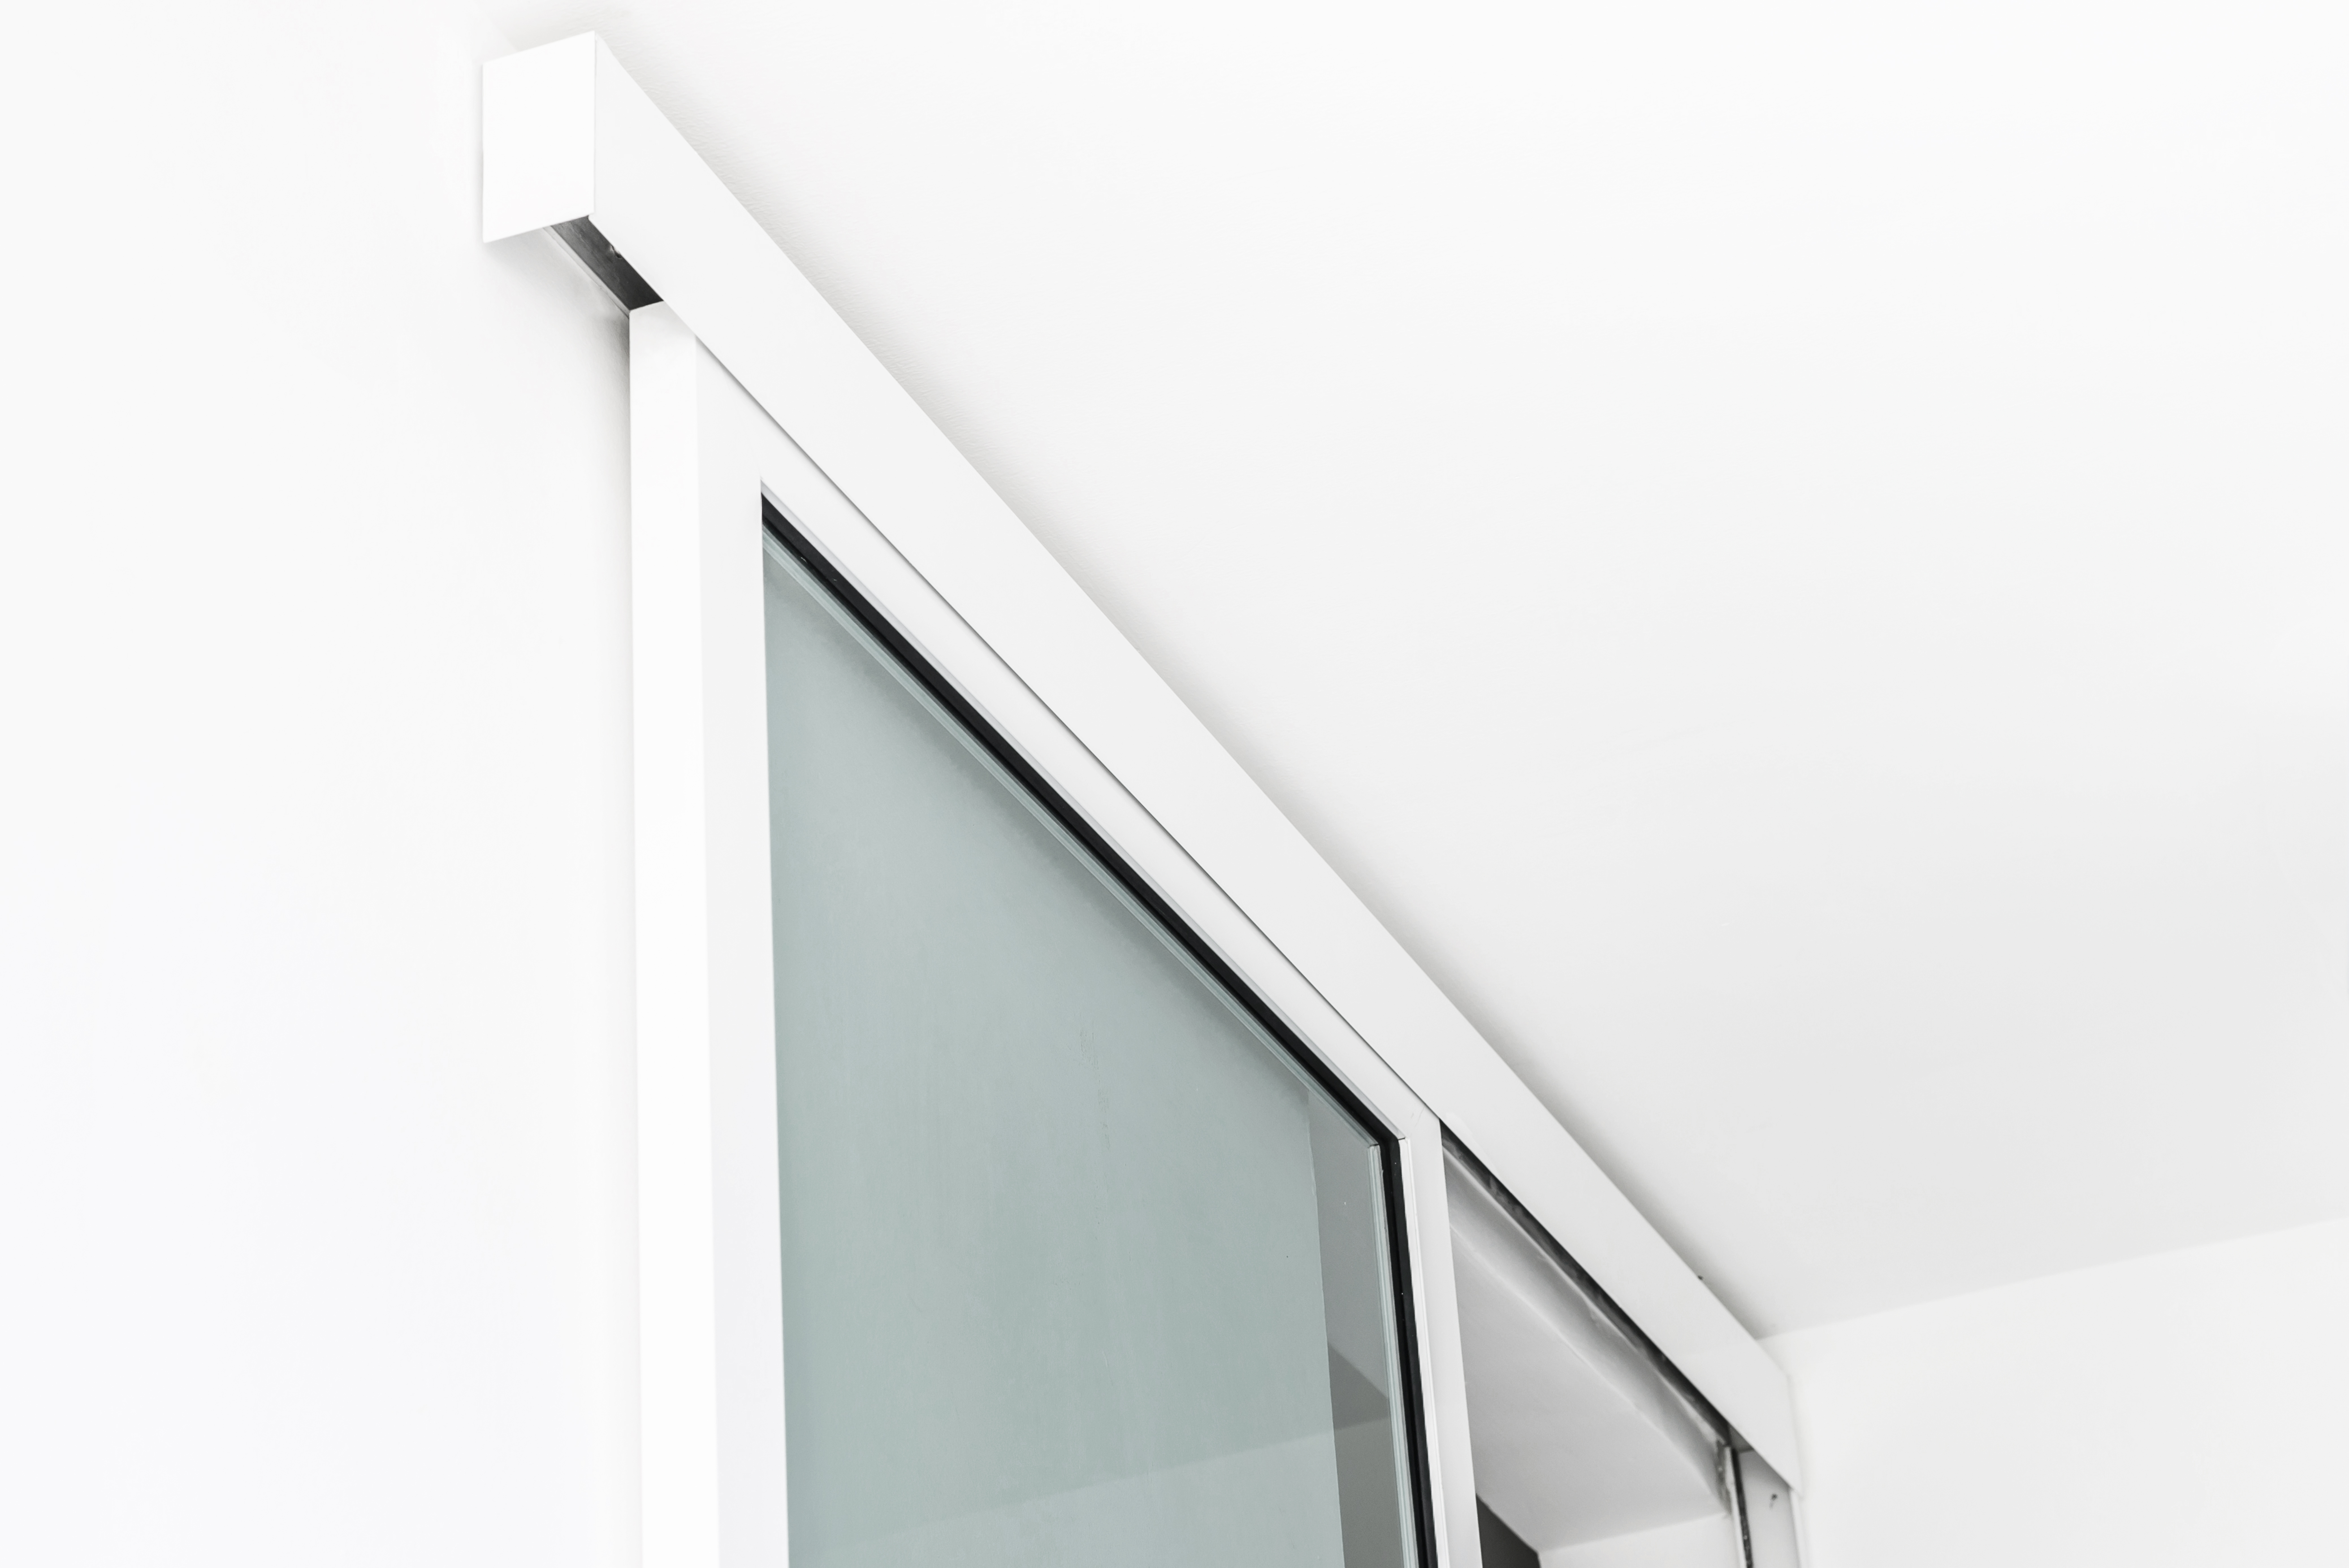 Sliding Doors With A Cover Plate Helaform